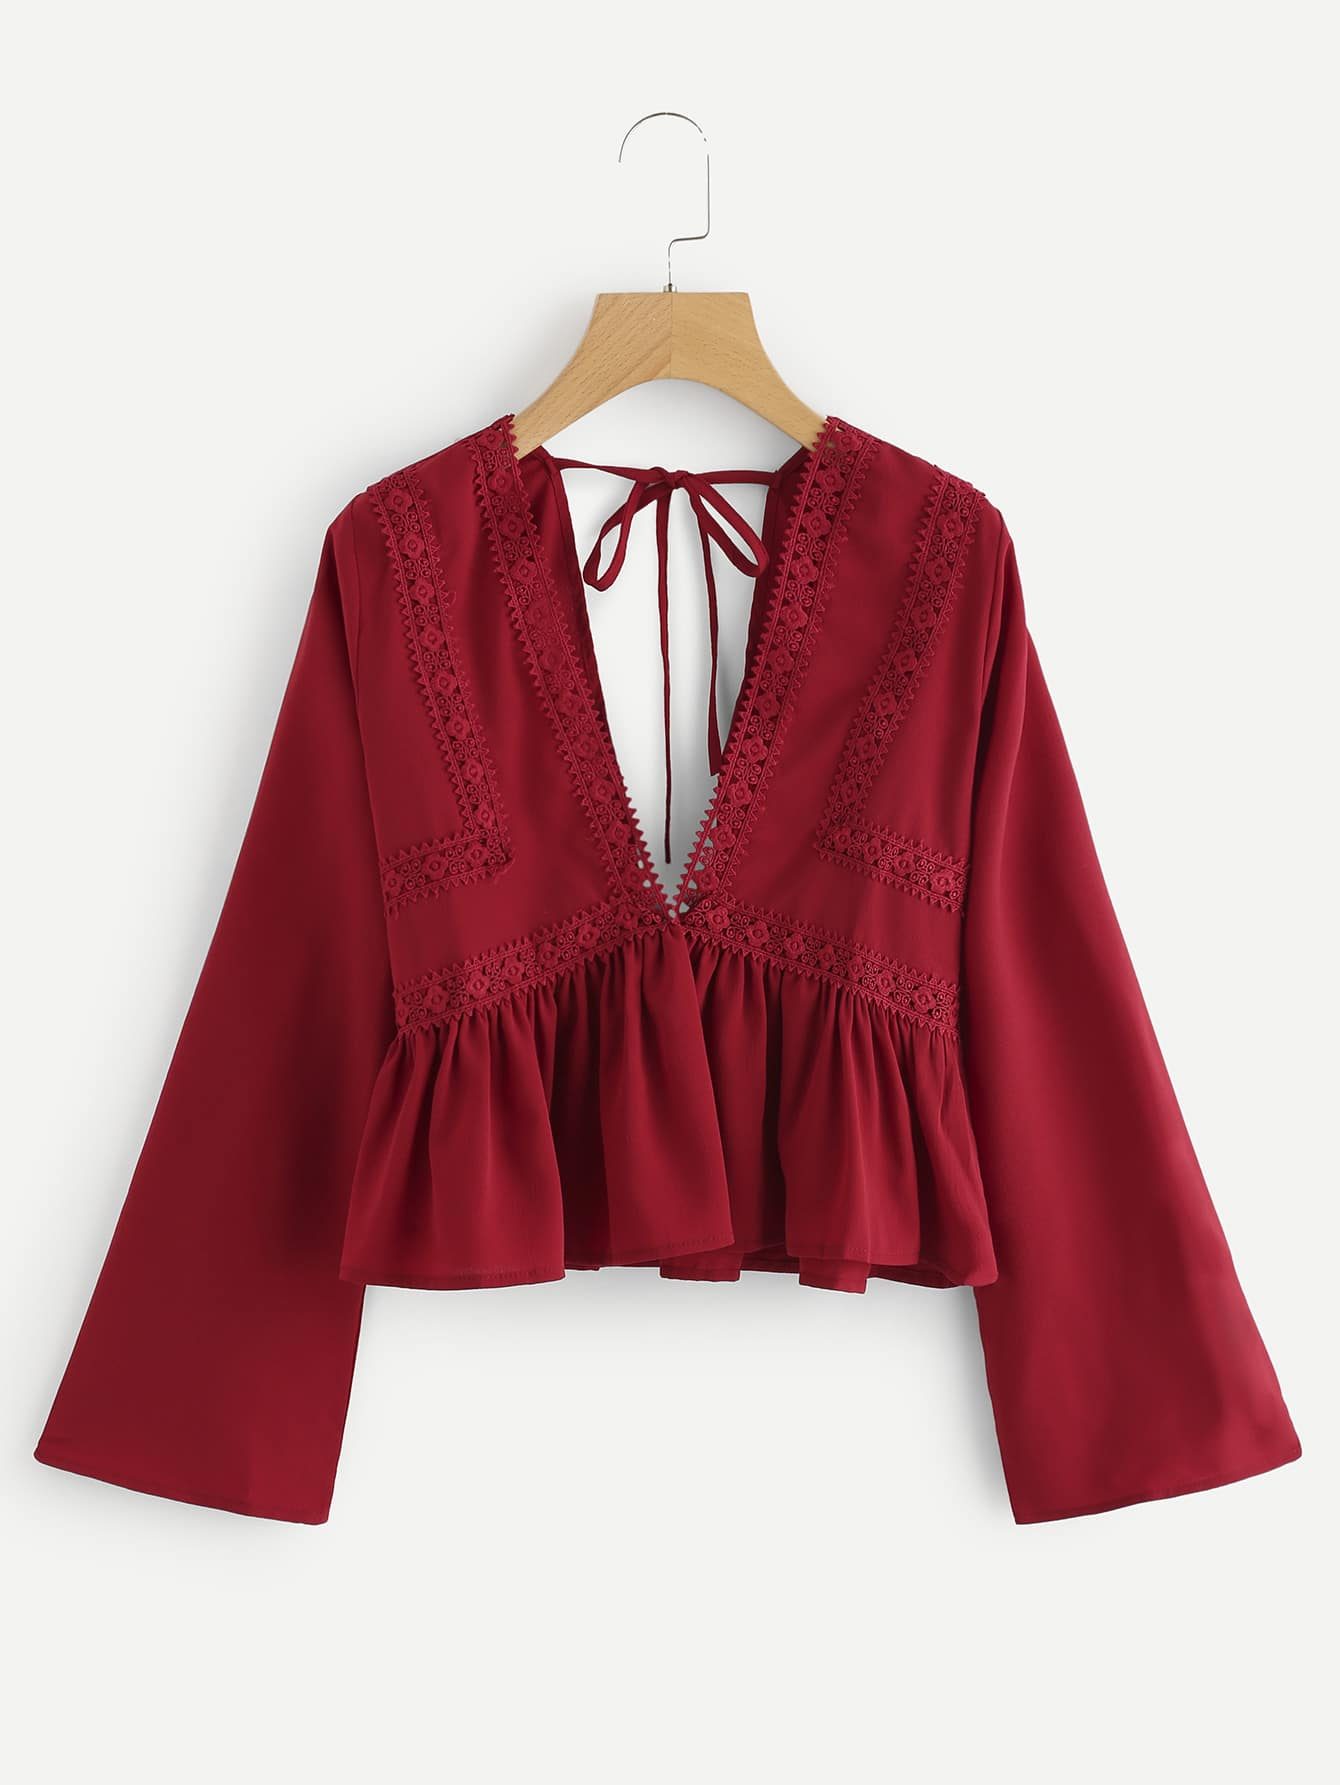 Plunging V-neckline Lace Trim Self Tie Frill Top